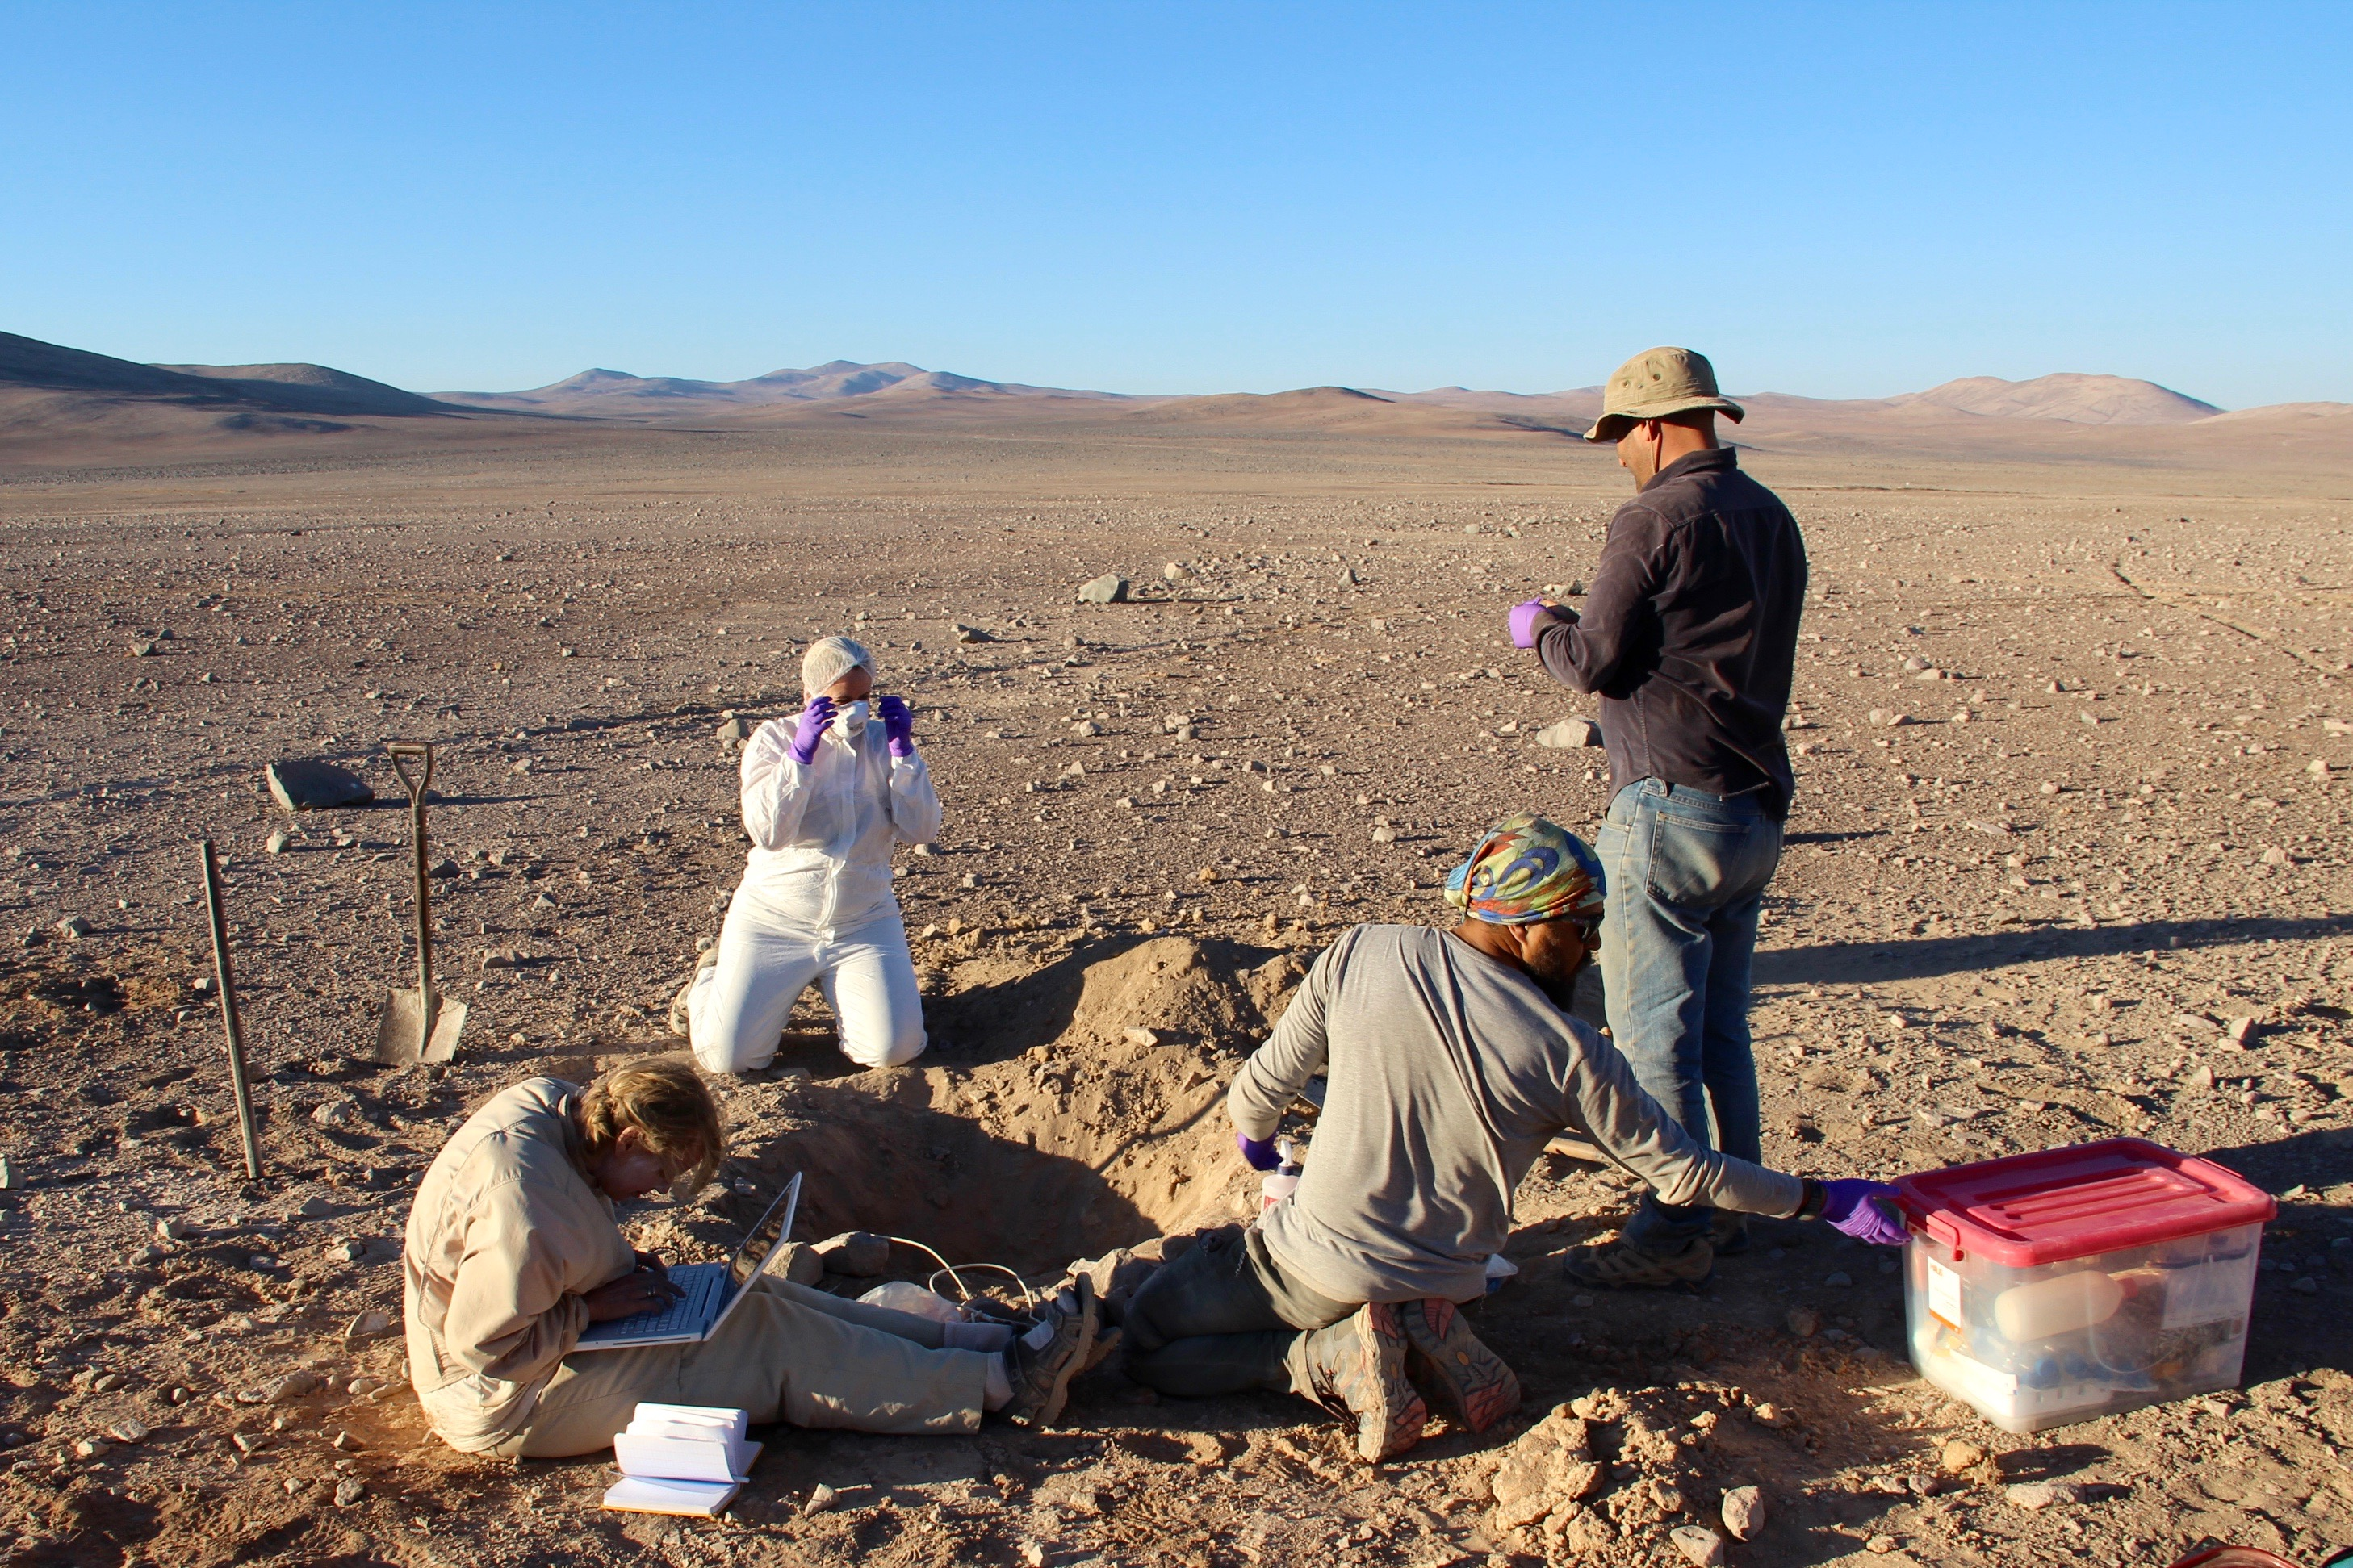 NASA is testing a new rover in the Chilean desert